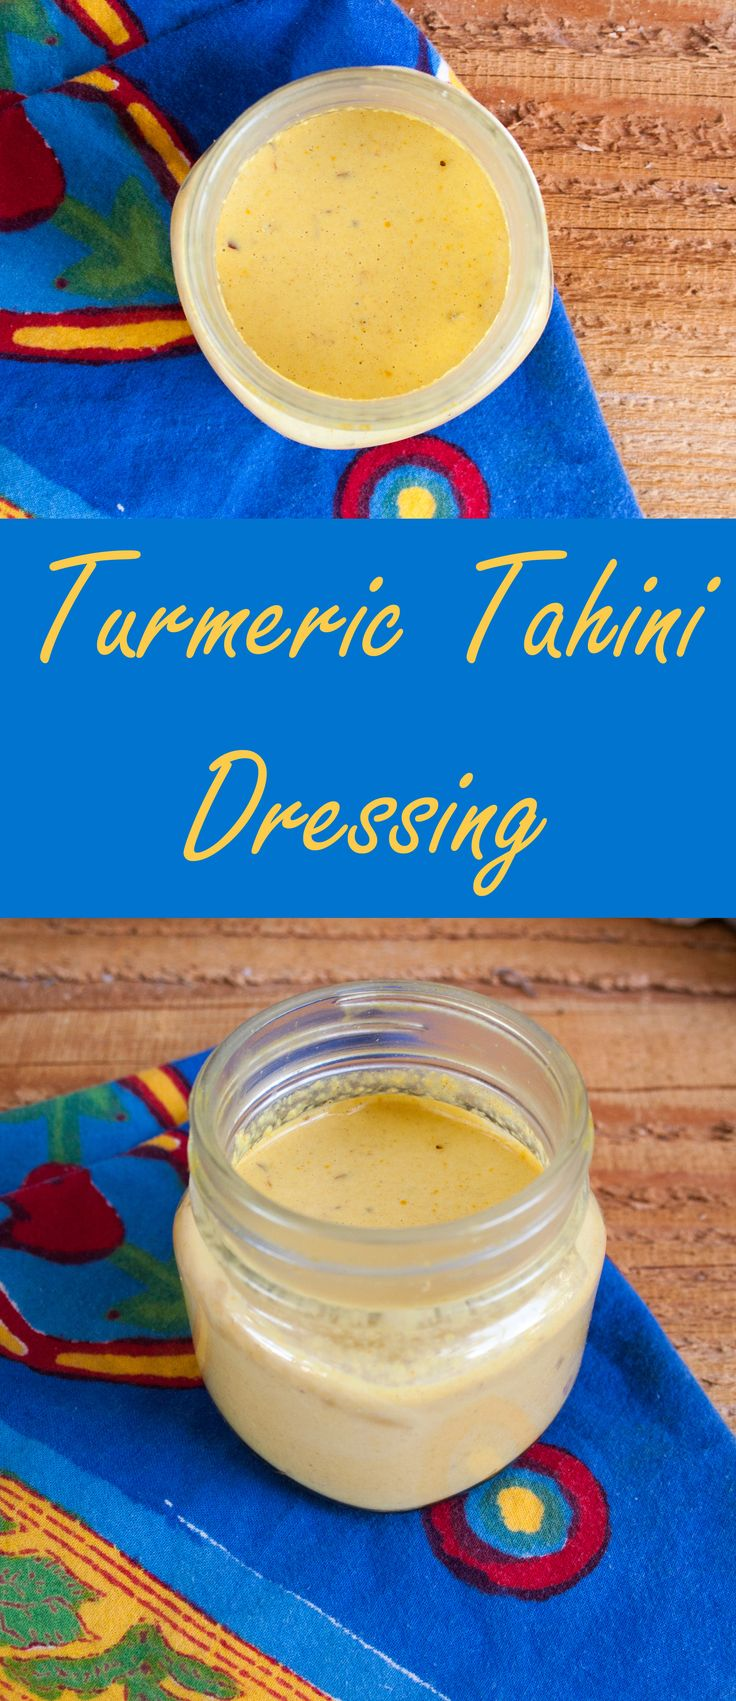 Turmeric Tahini Dressing - (vegan, gluten free) This savory dressing is really versatile. It goes well with sweet and savory flavors.